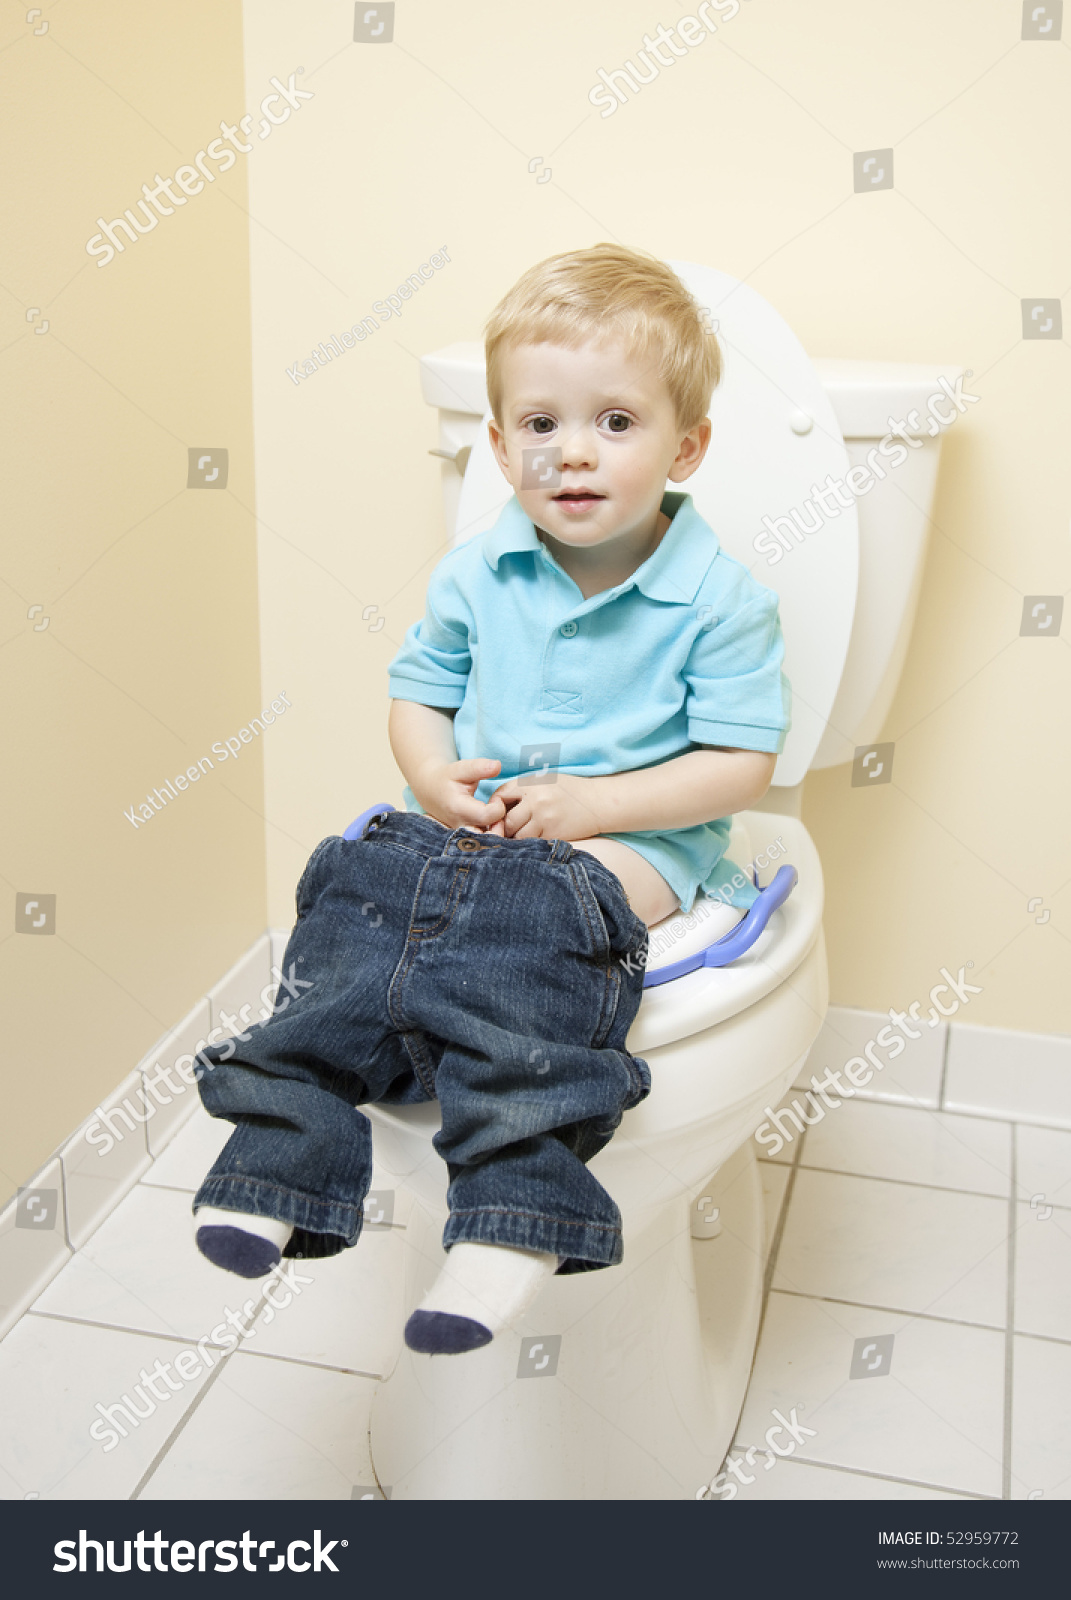 young boy and the toilets Young Boy Sitting on Toilet Seat